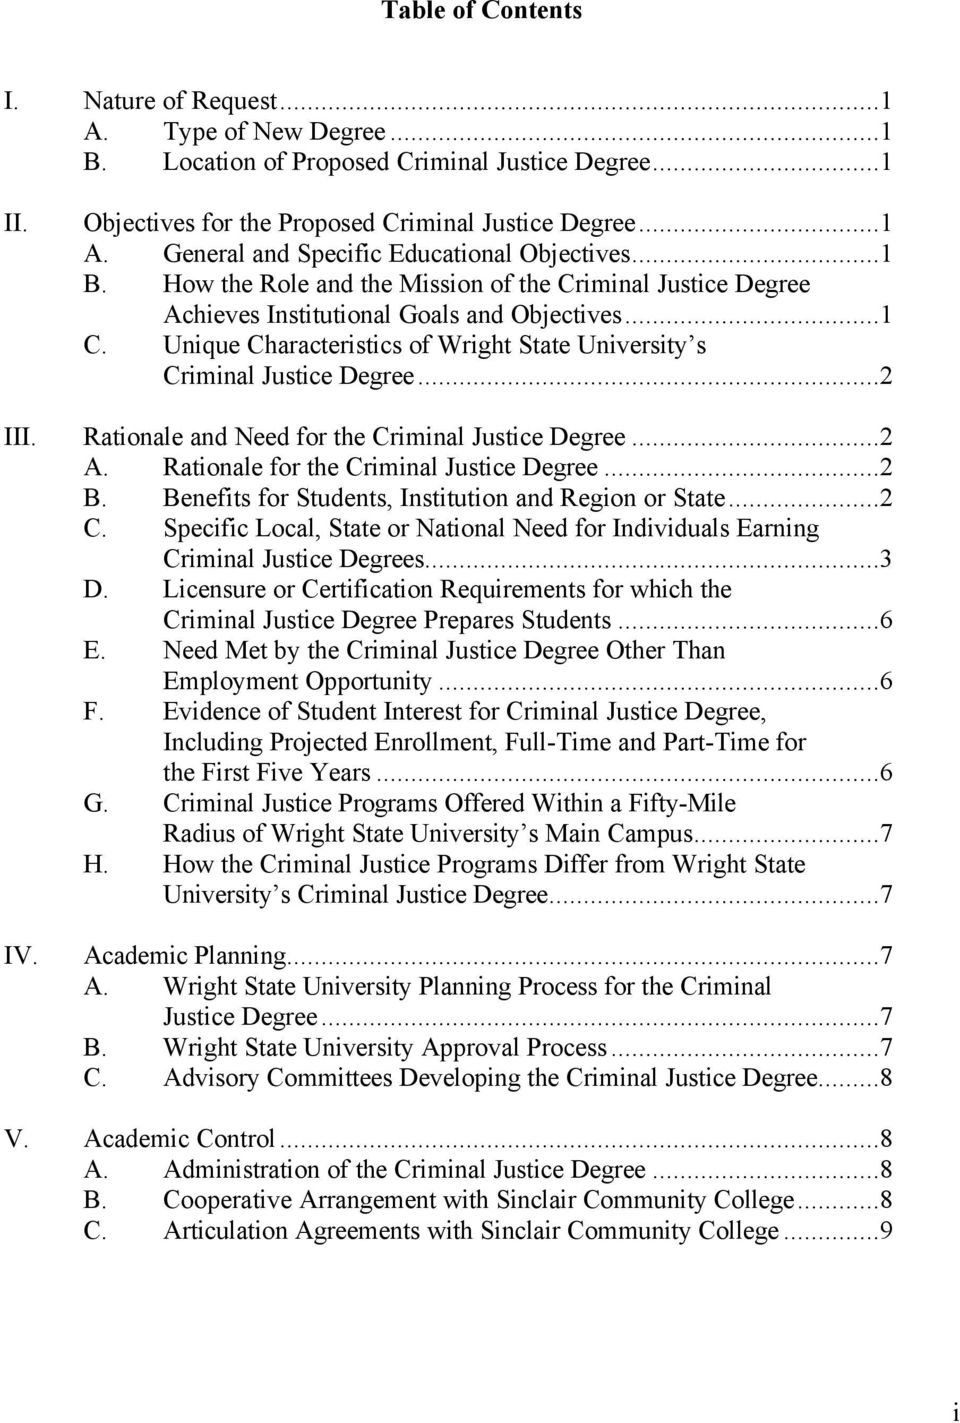 Rationale and Need for the Criminal Justice Degree...2 A. Rationale for the Criminal Justice Degree...2 B. Benefits for Students, Institution and Region or State...2 C.